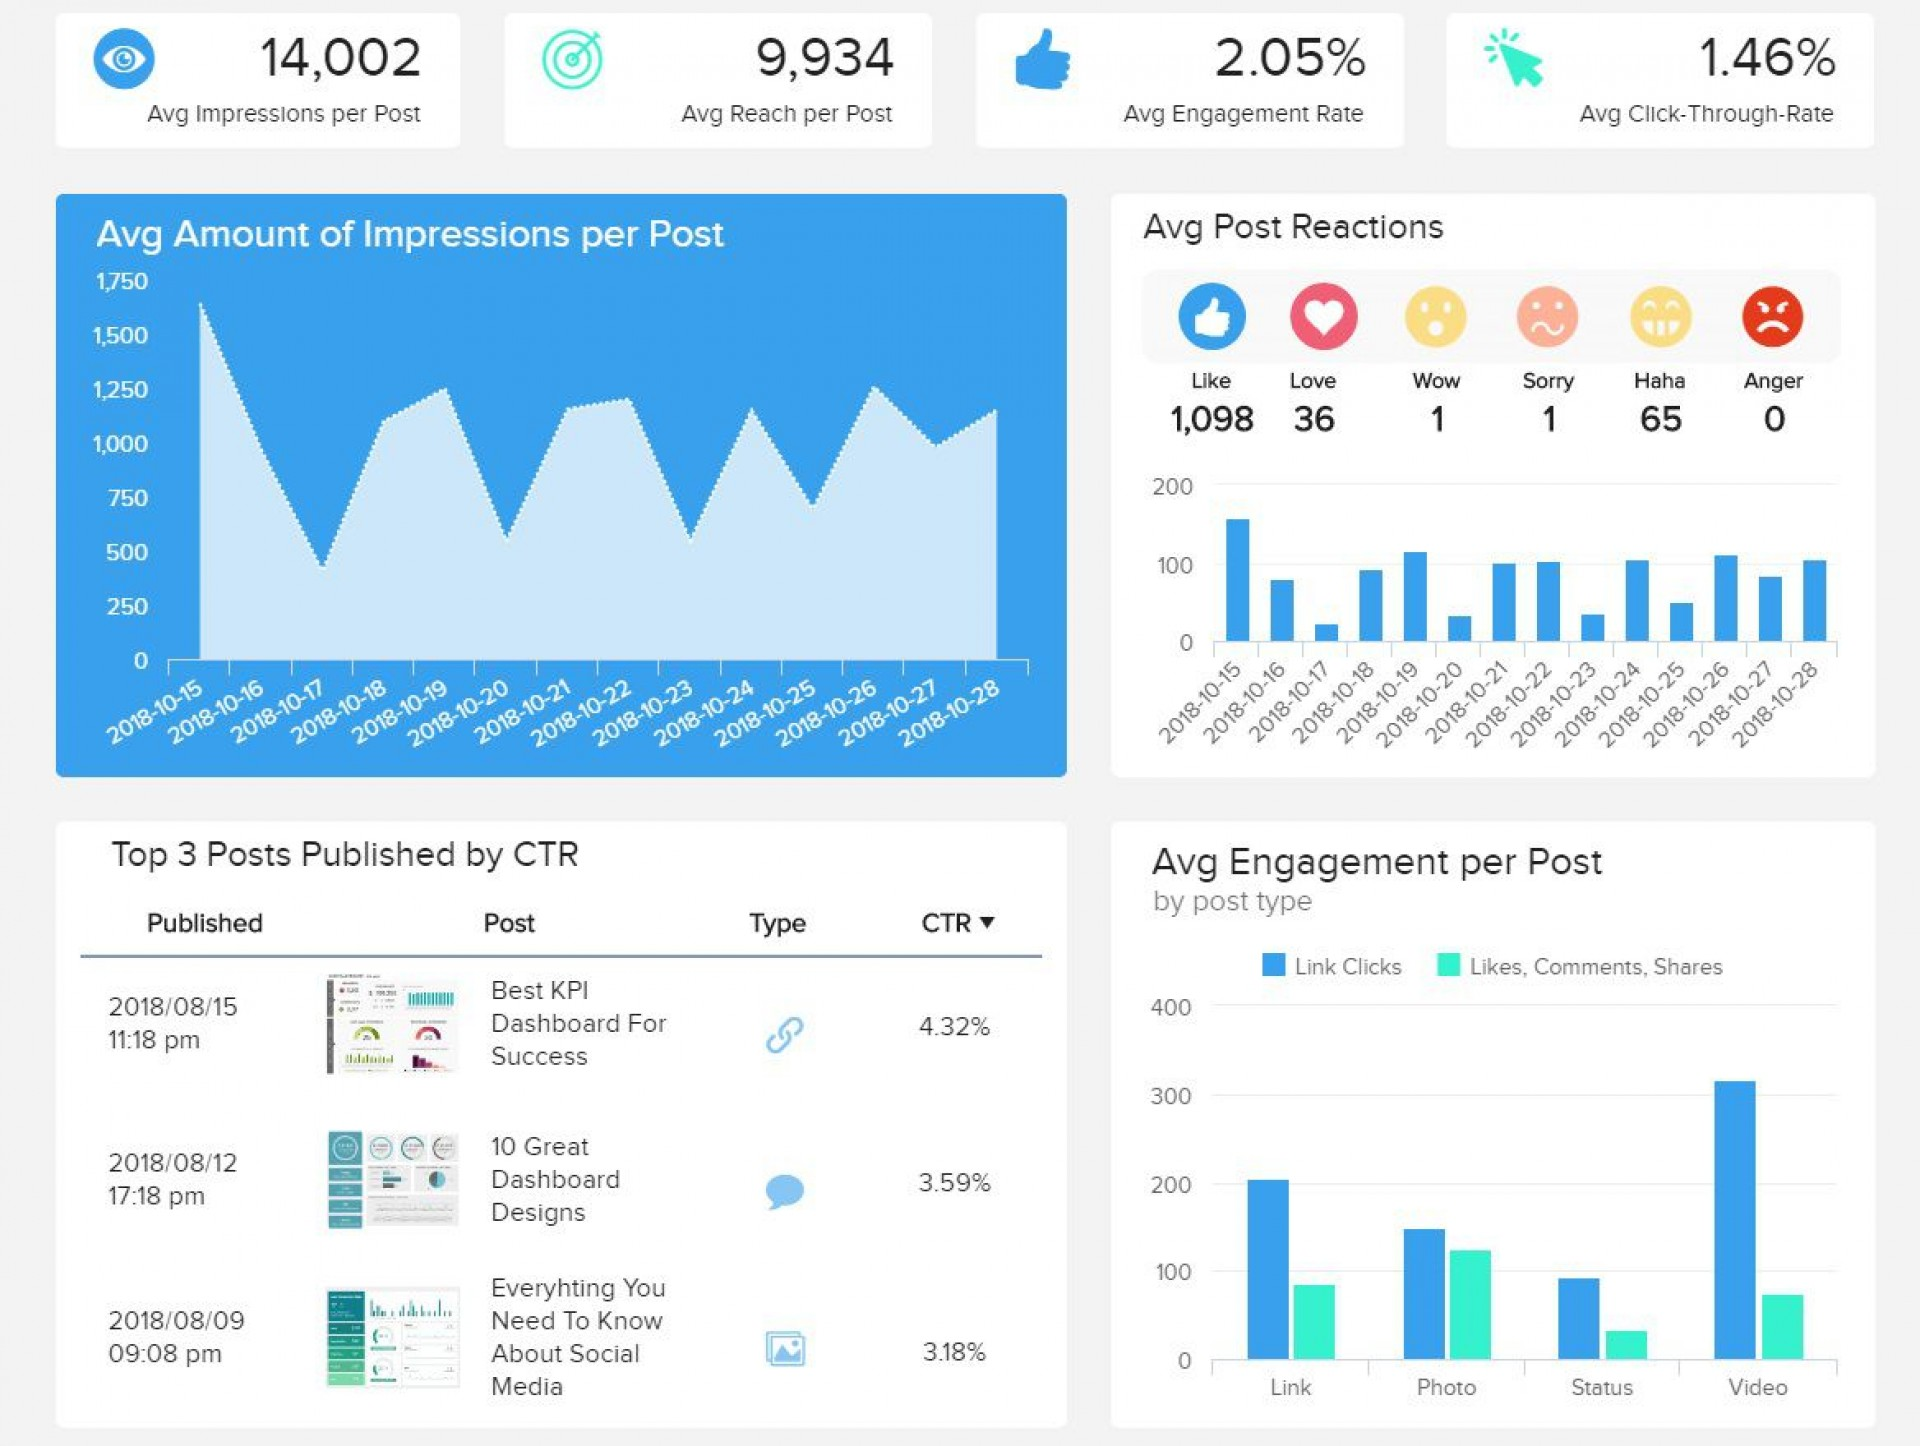 003 Awesome Social Media Report Template Picture  Templates Powerpoint Monthly Free1920